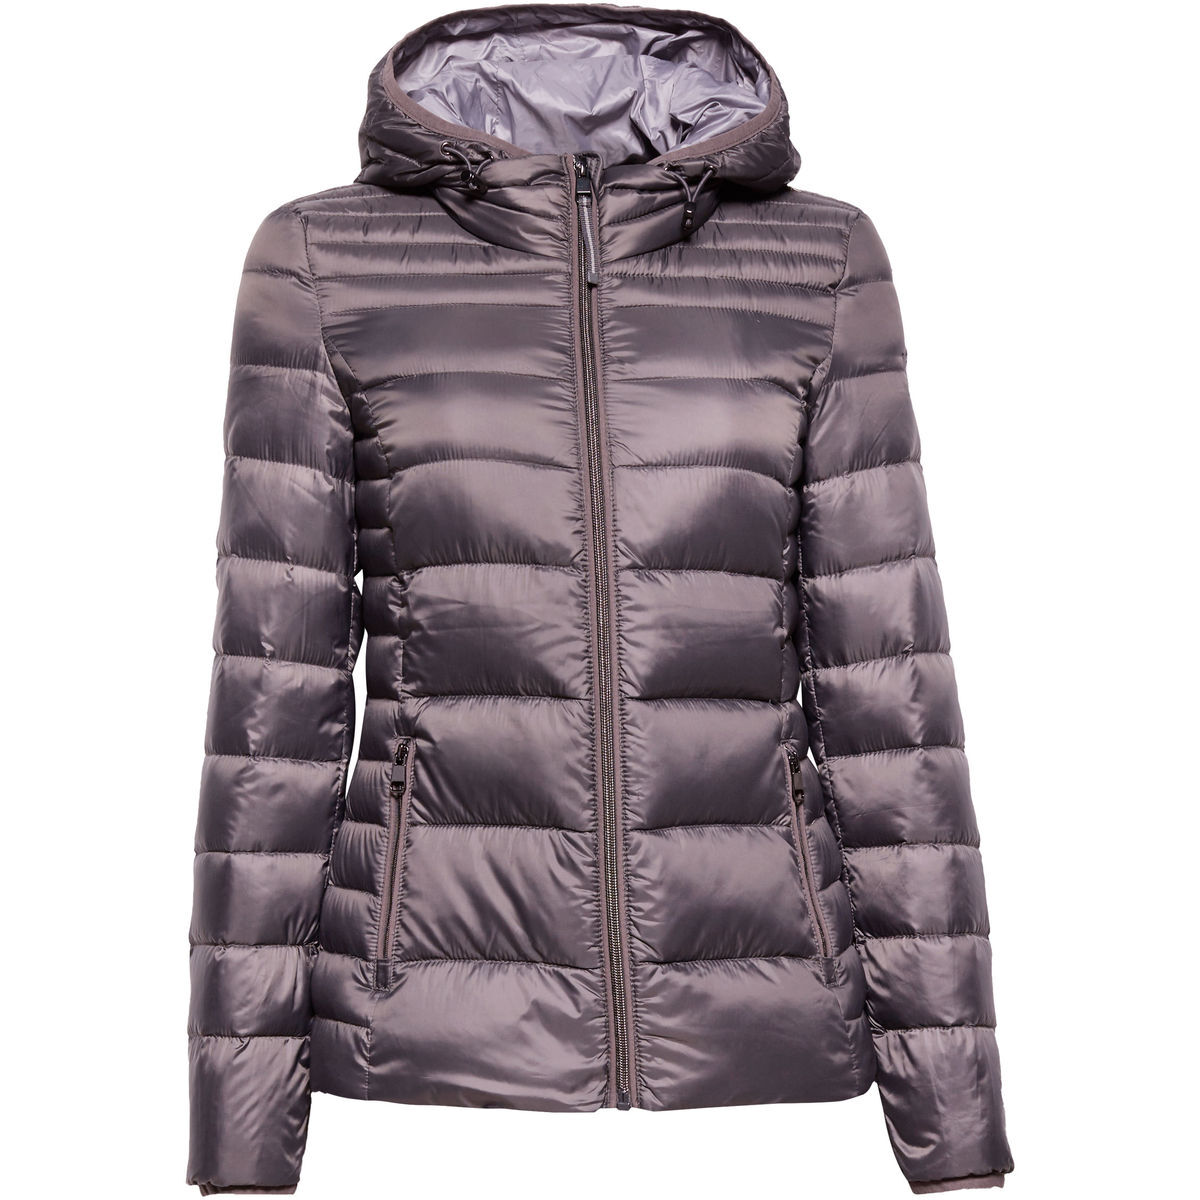 new photos 8e721 c9127 Leichte Daunenjacke Damen Esprit. Elegant Esprit Collection ...